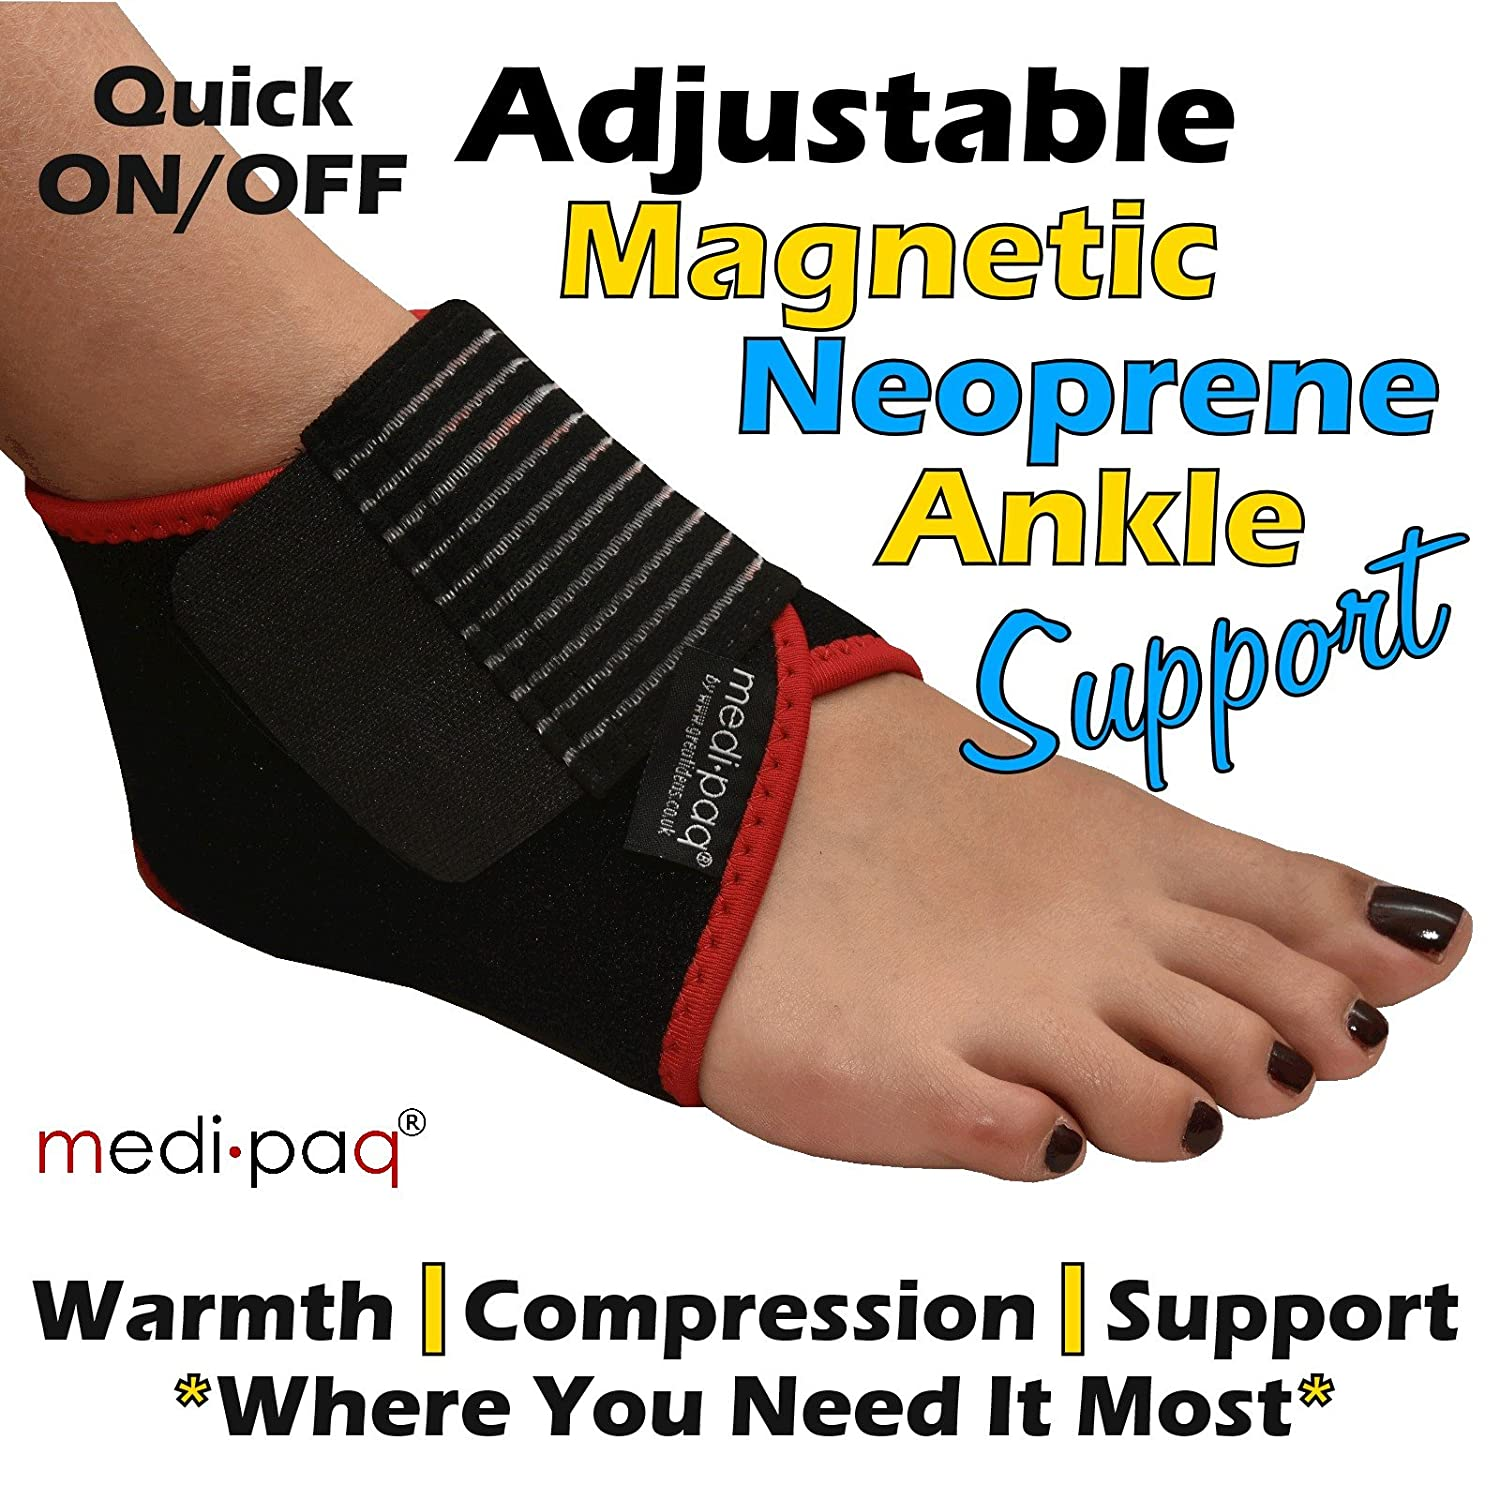 20a87db9f5 Medipaq® Neoprene Magnetic Ankle Support - Warmth & Compression Where Its  Needed Most: Amazon.co.uk: Health & Personal Care